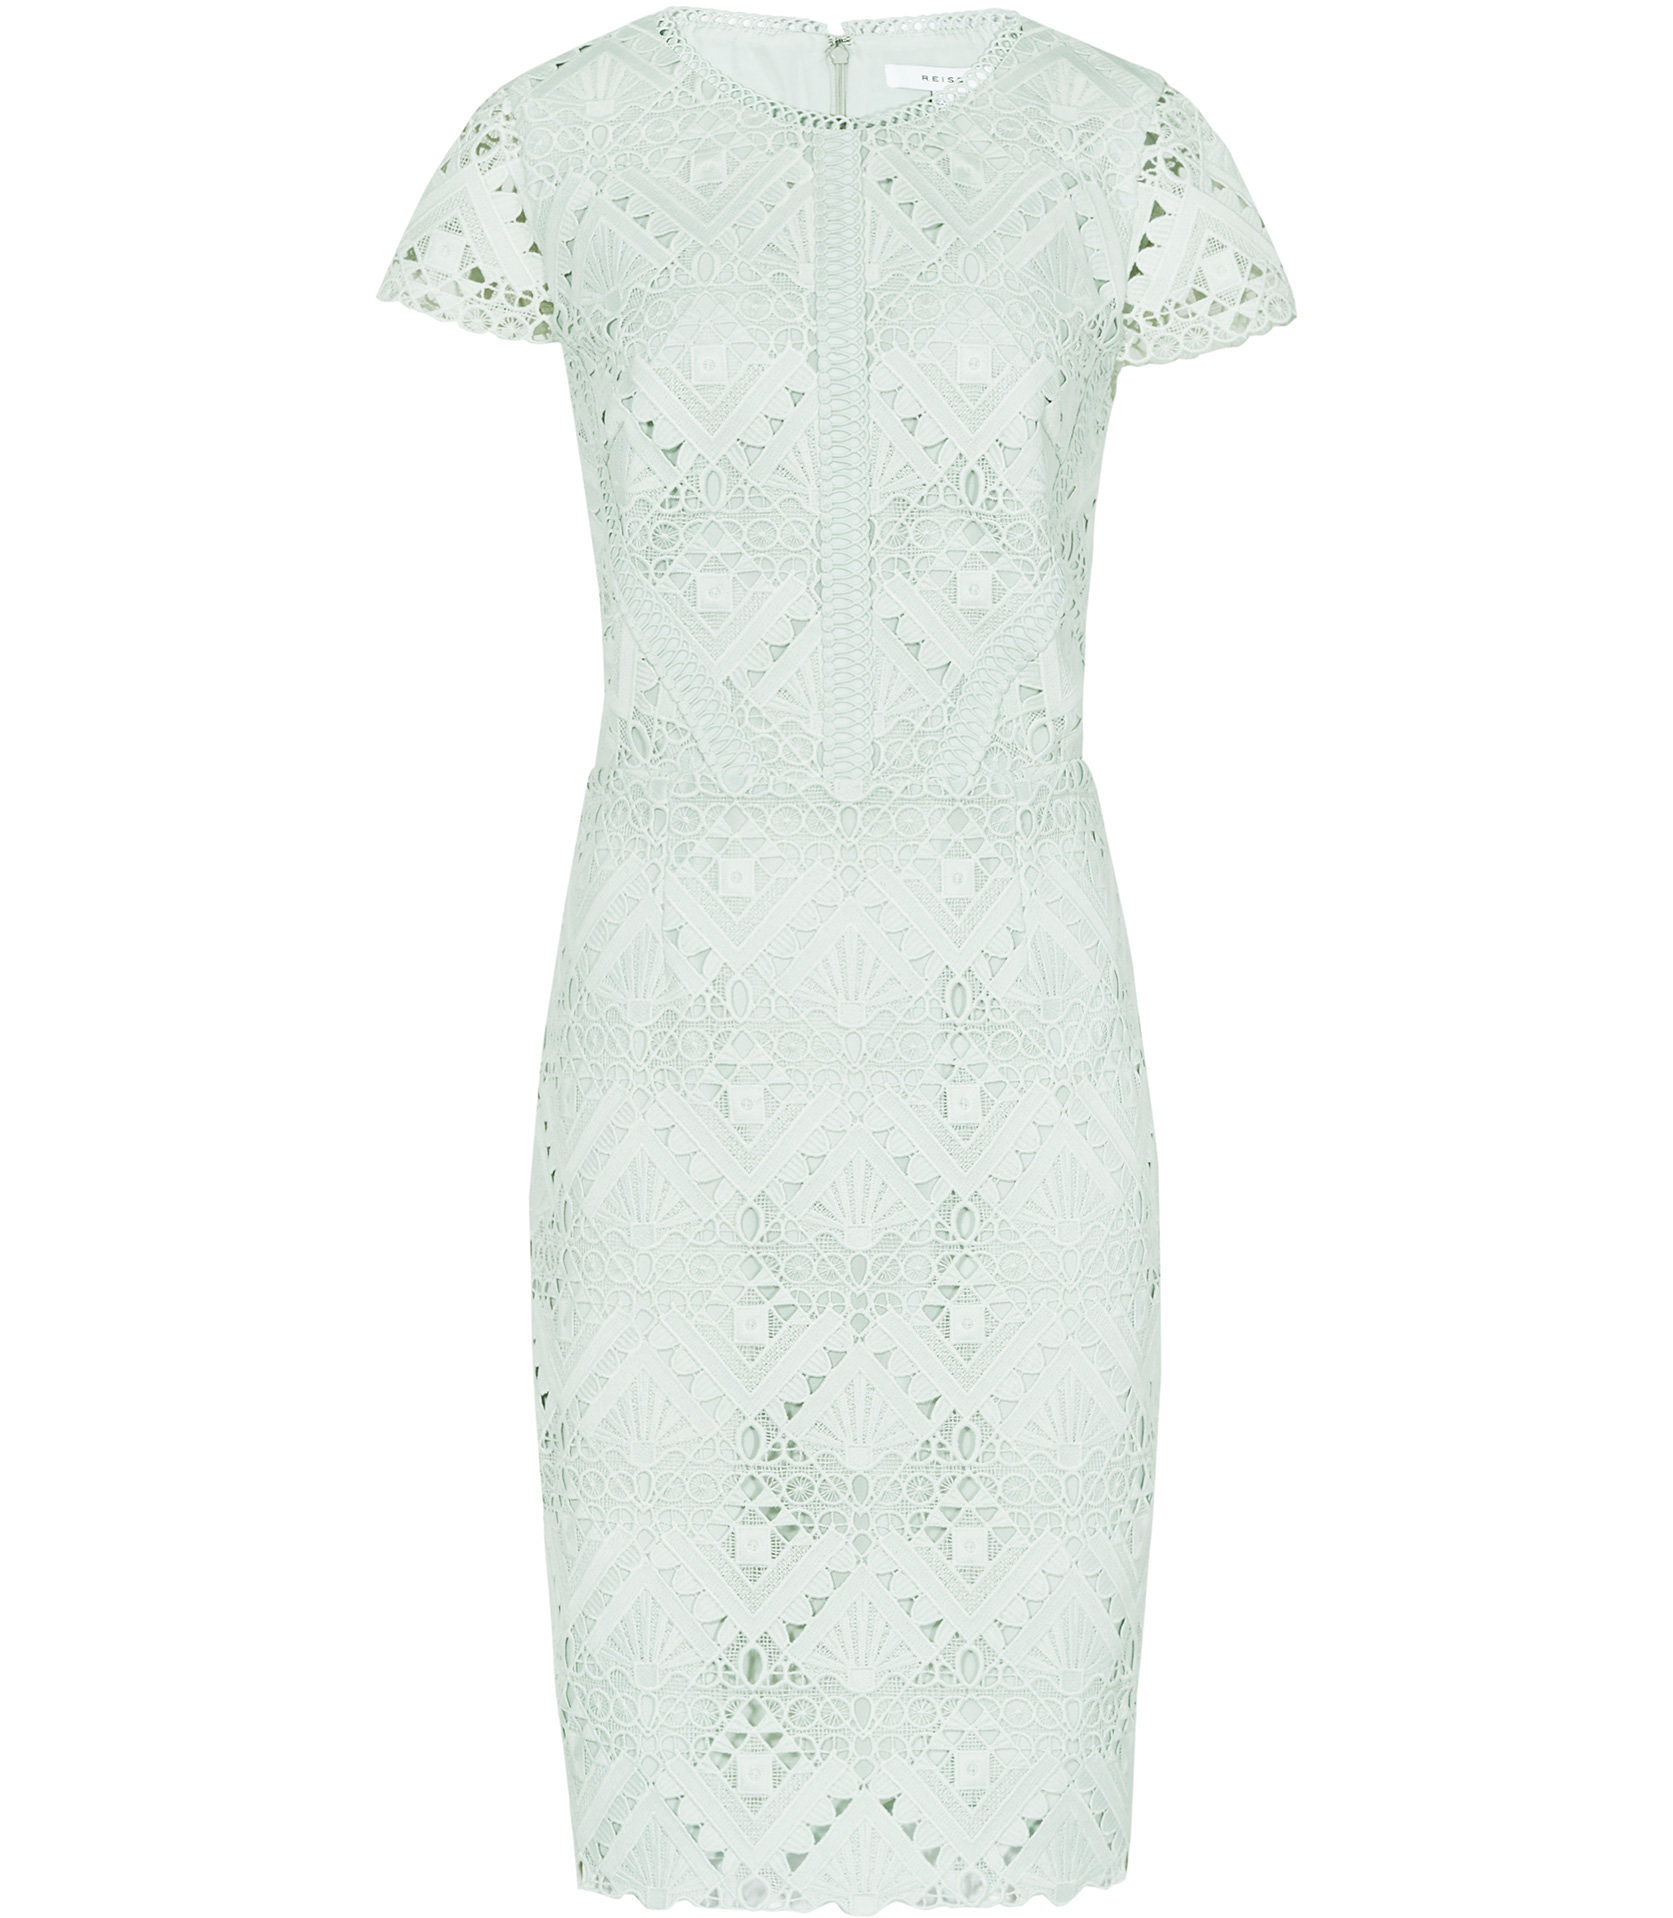 £250.00 at Reiss